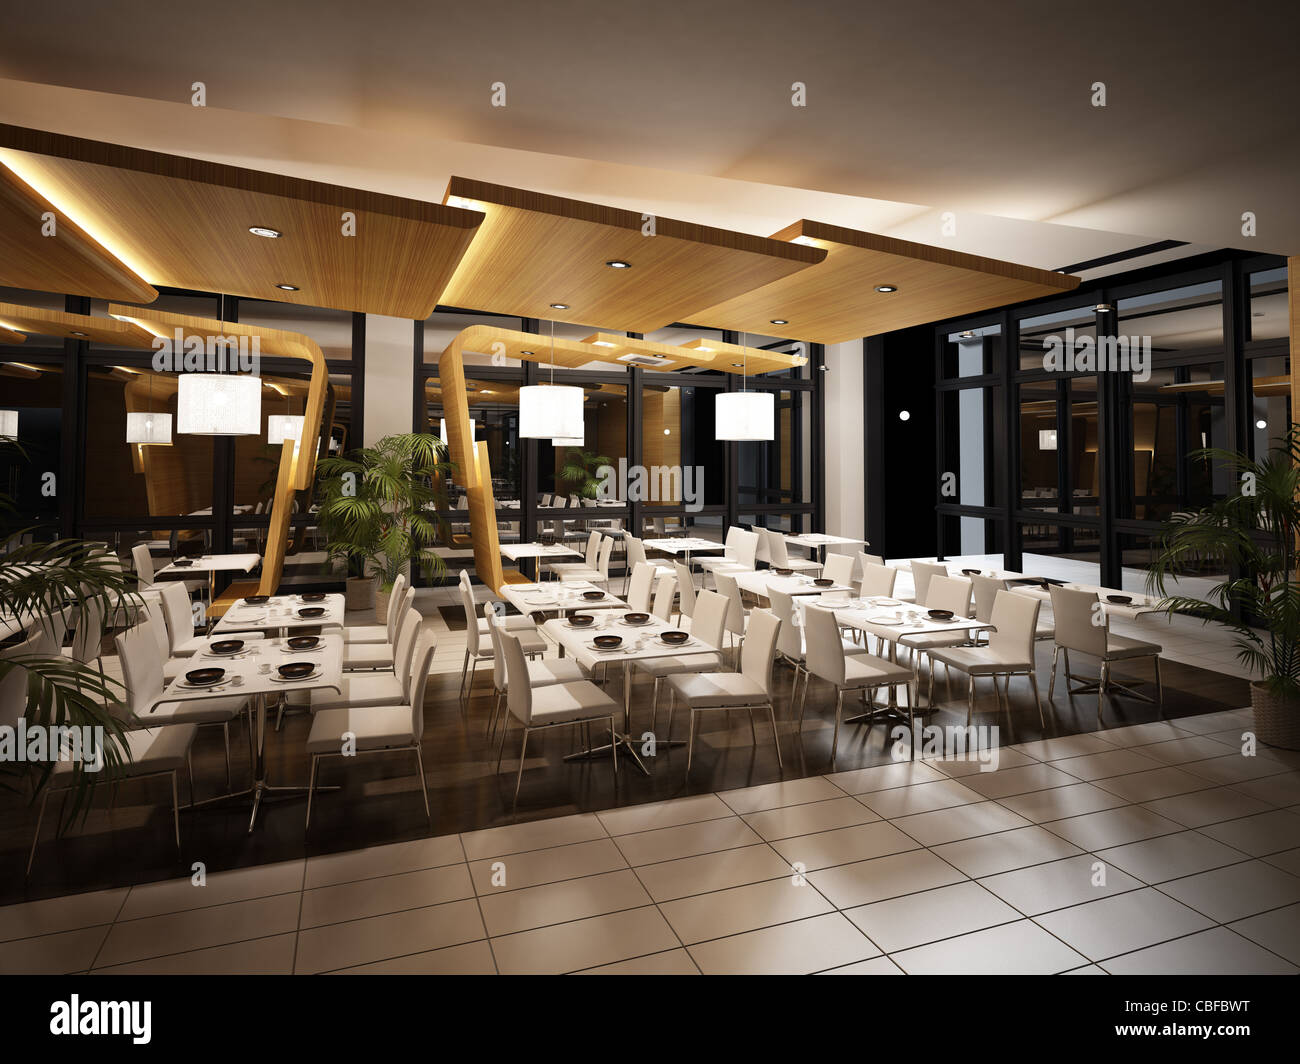 Modern restaurant interior view night time scene with